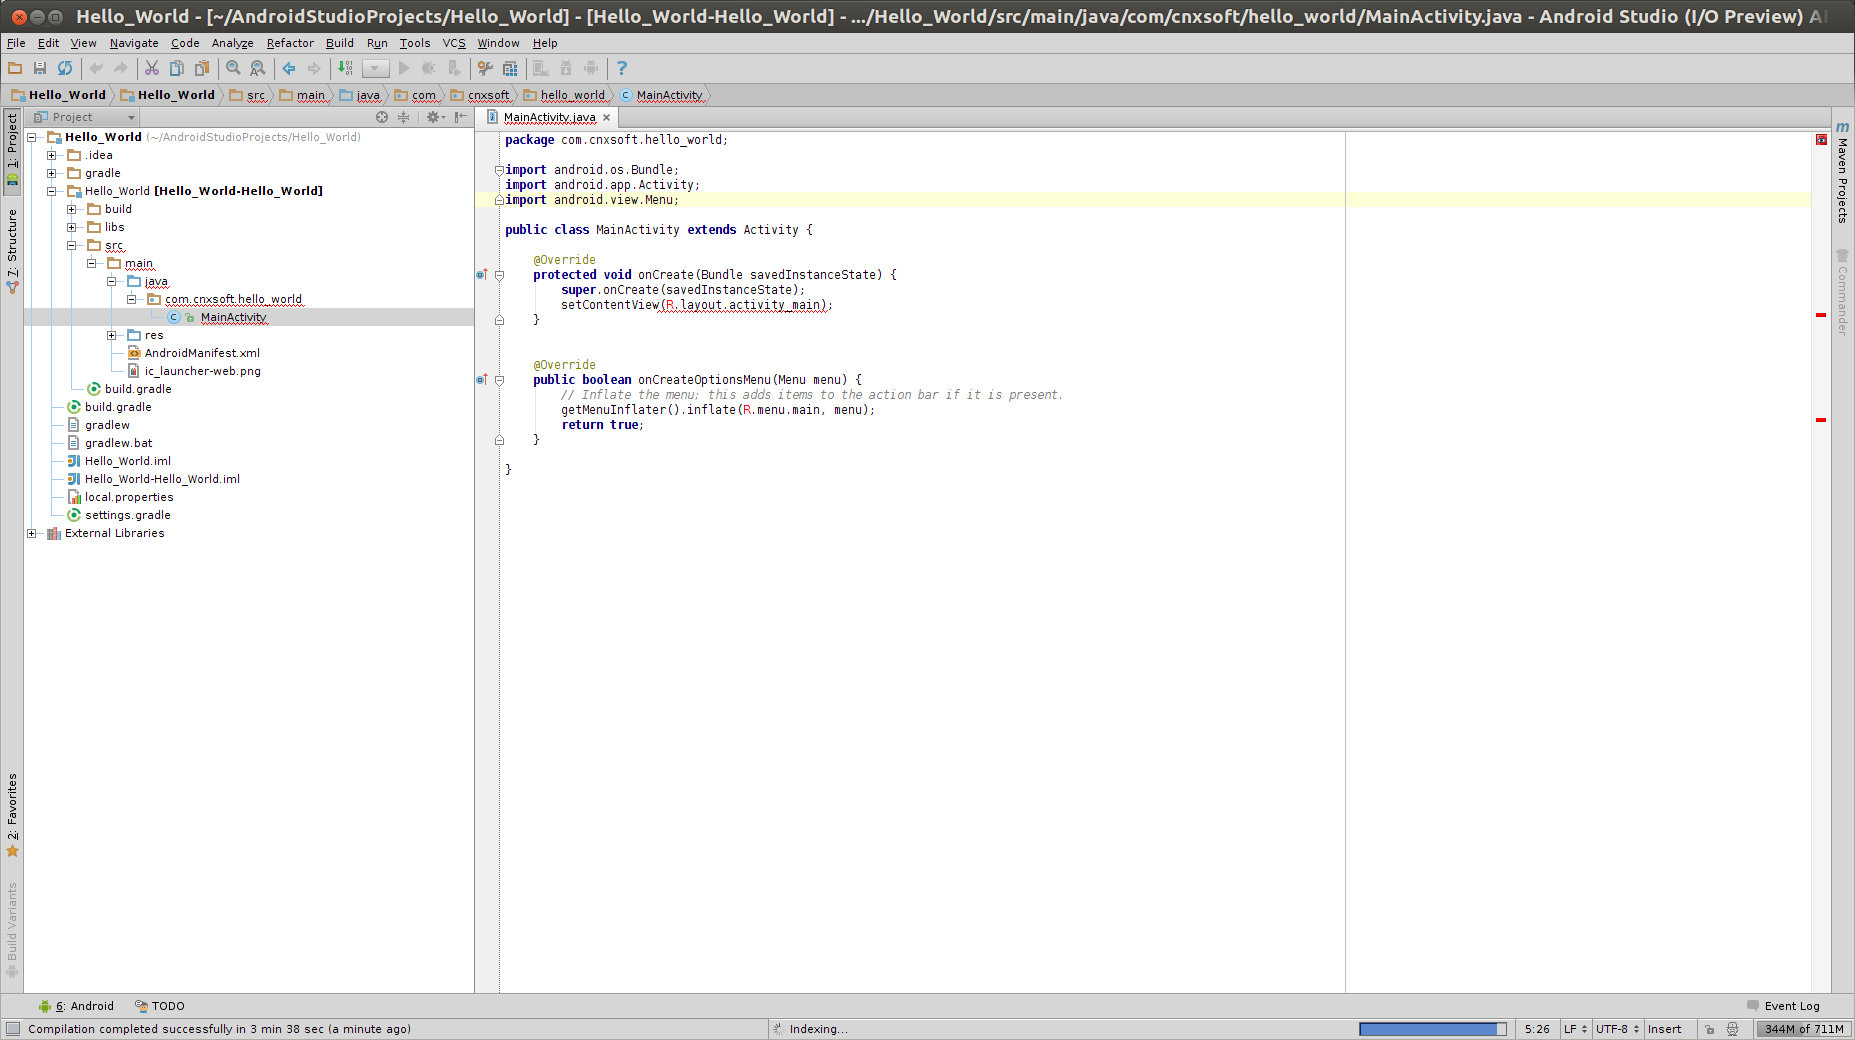 Android_Studio_Project_Java.jpg